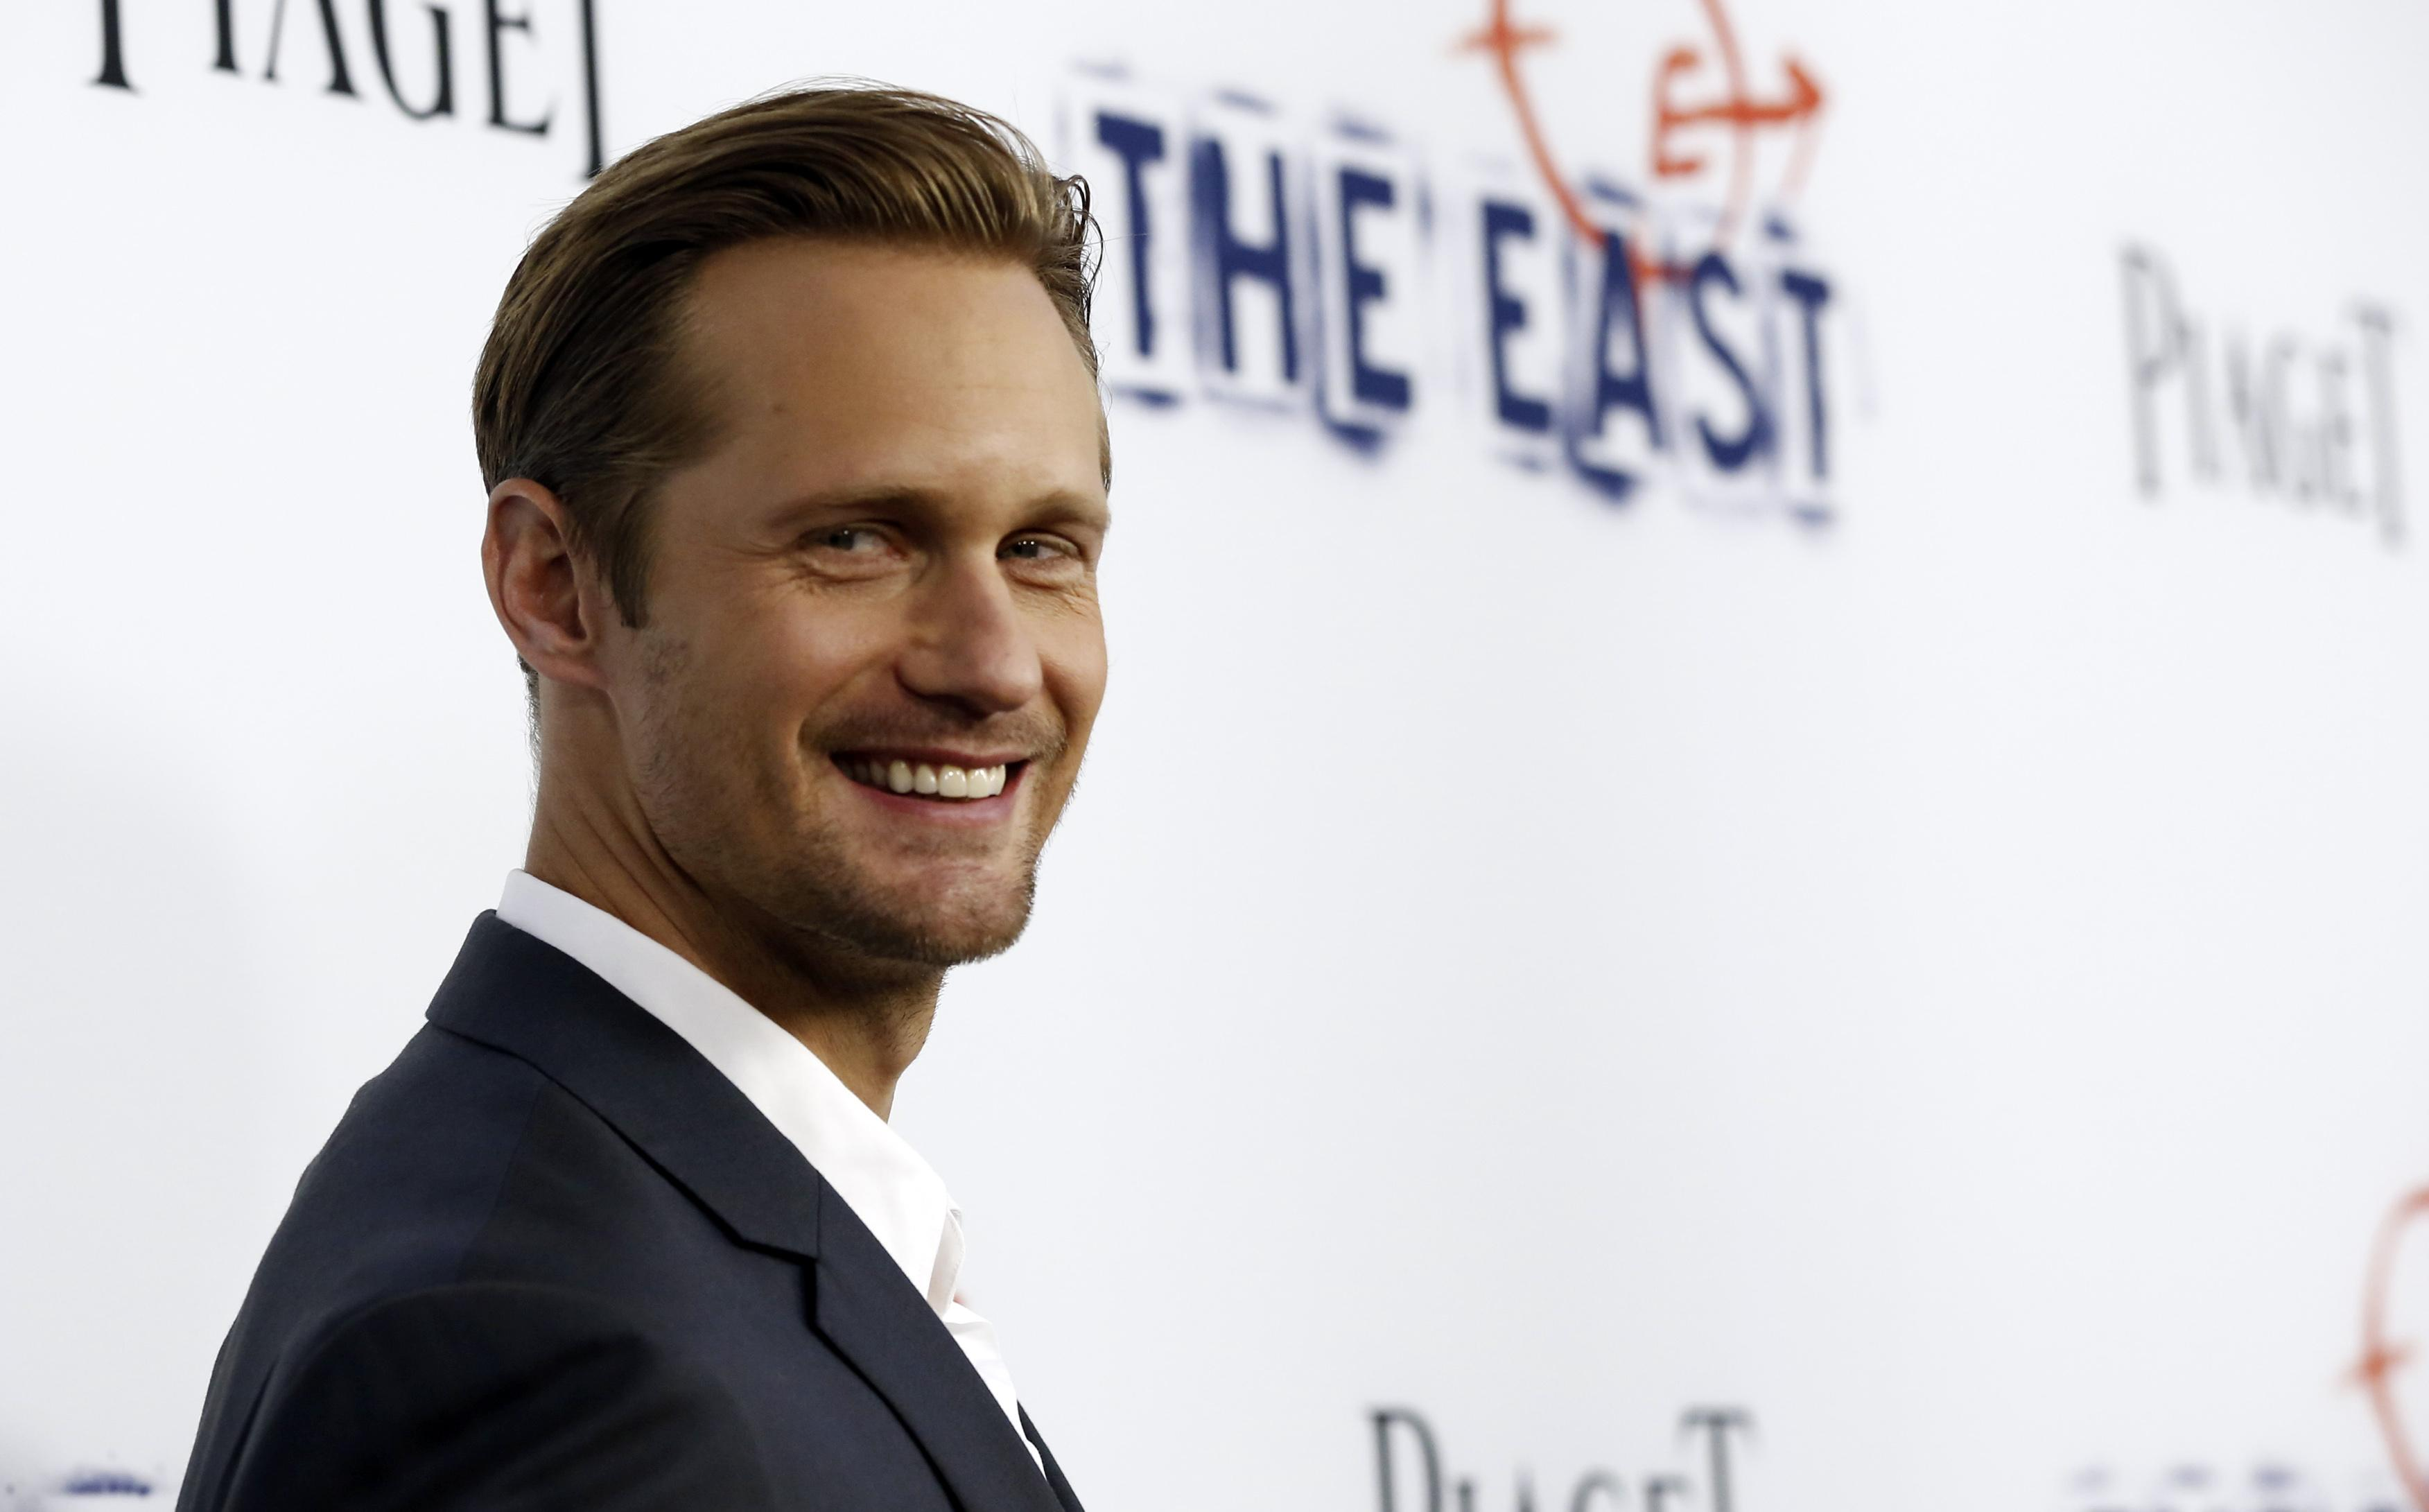 Alexander Skarsgard as Christian Grey?